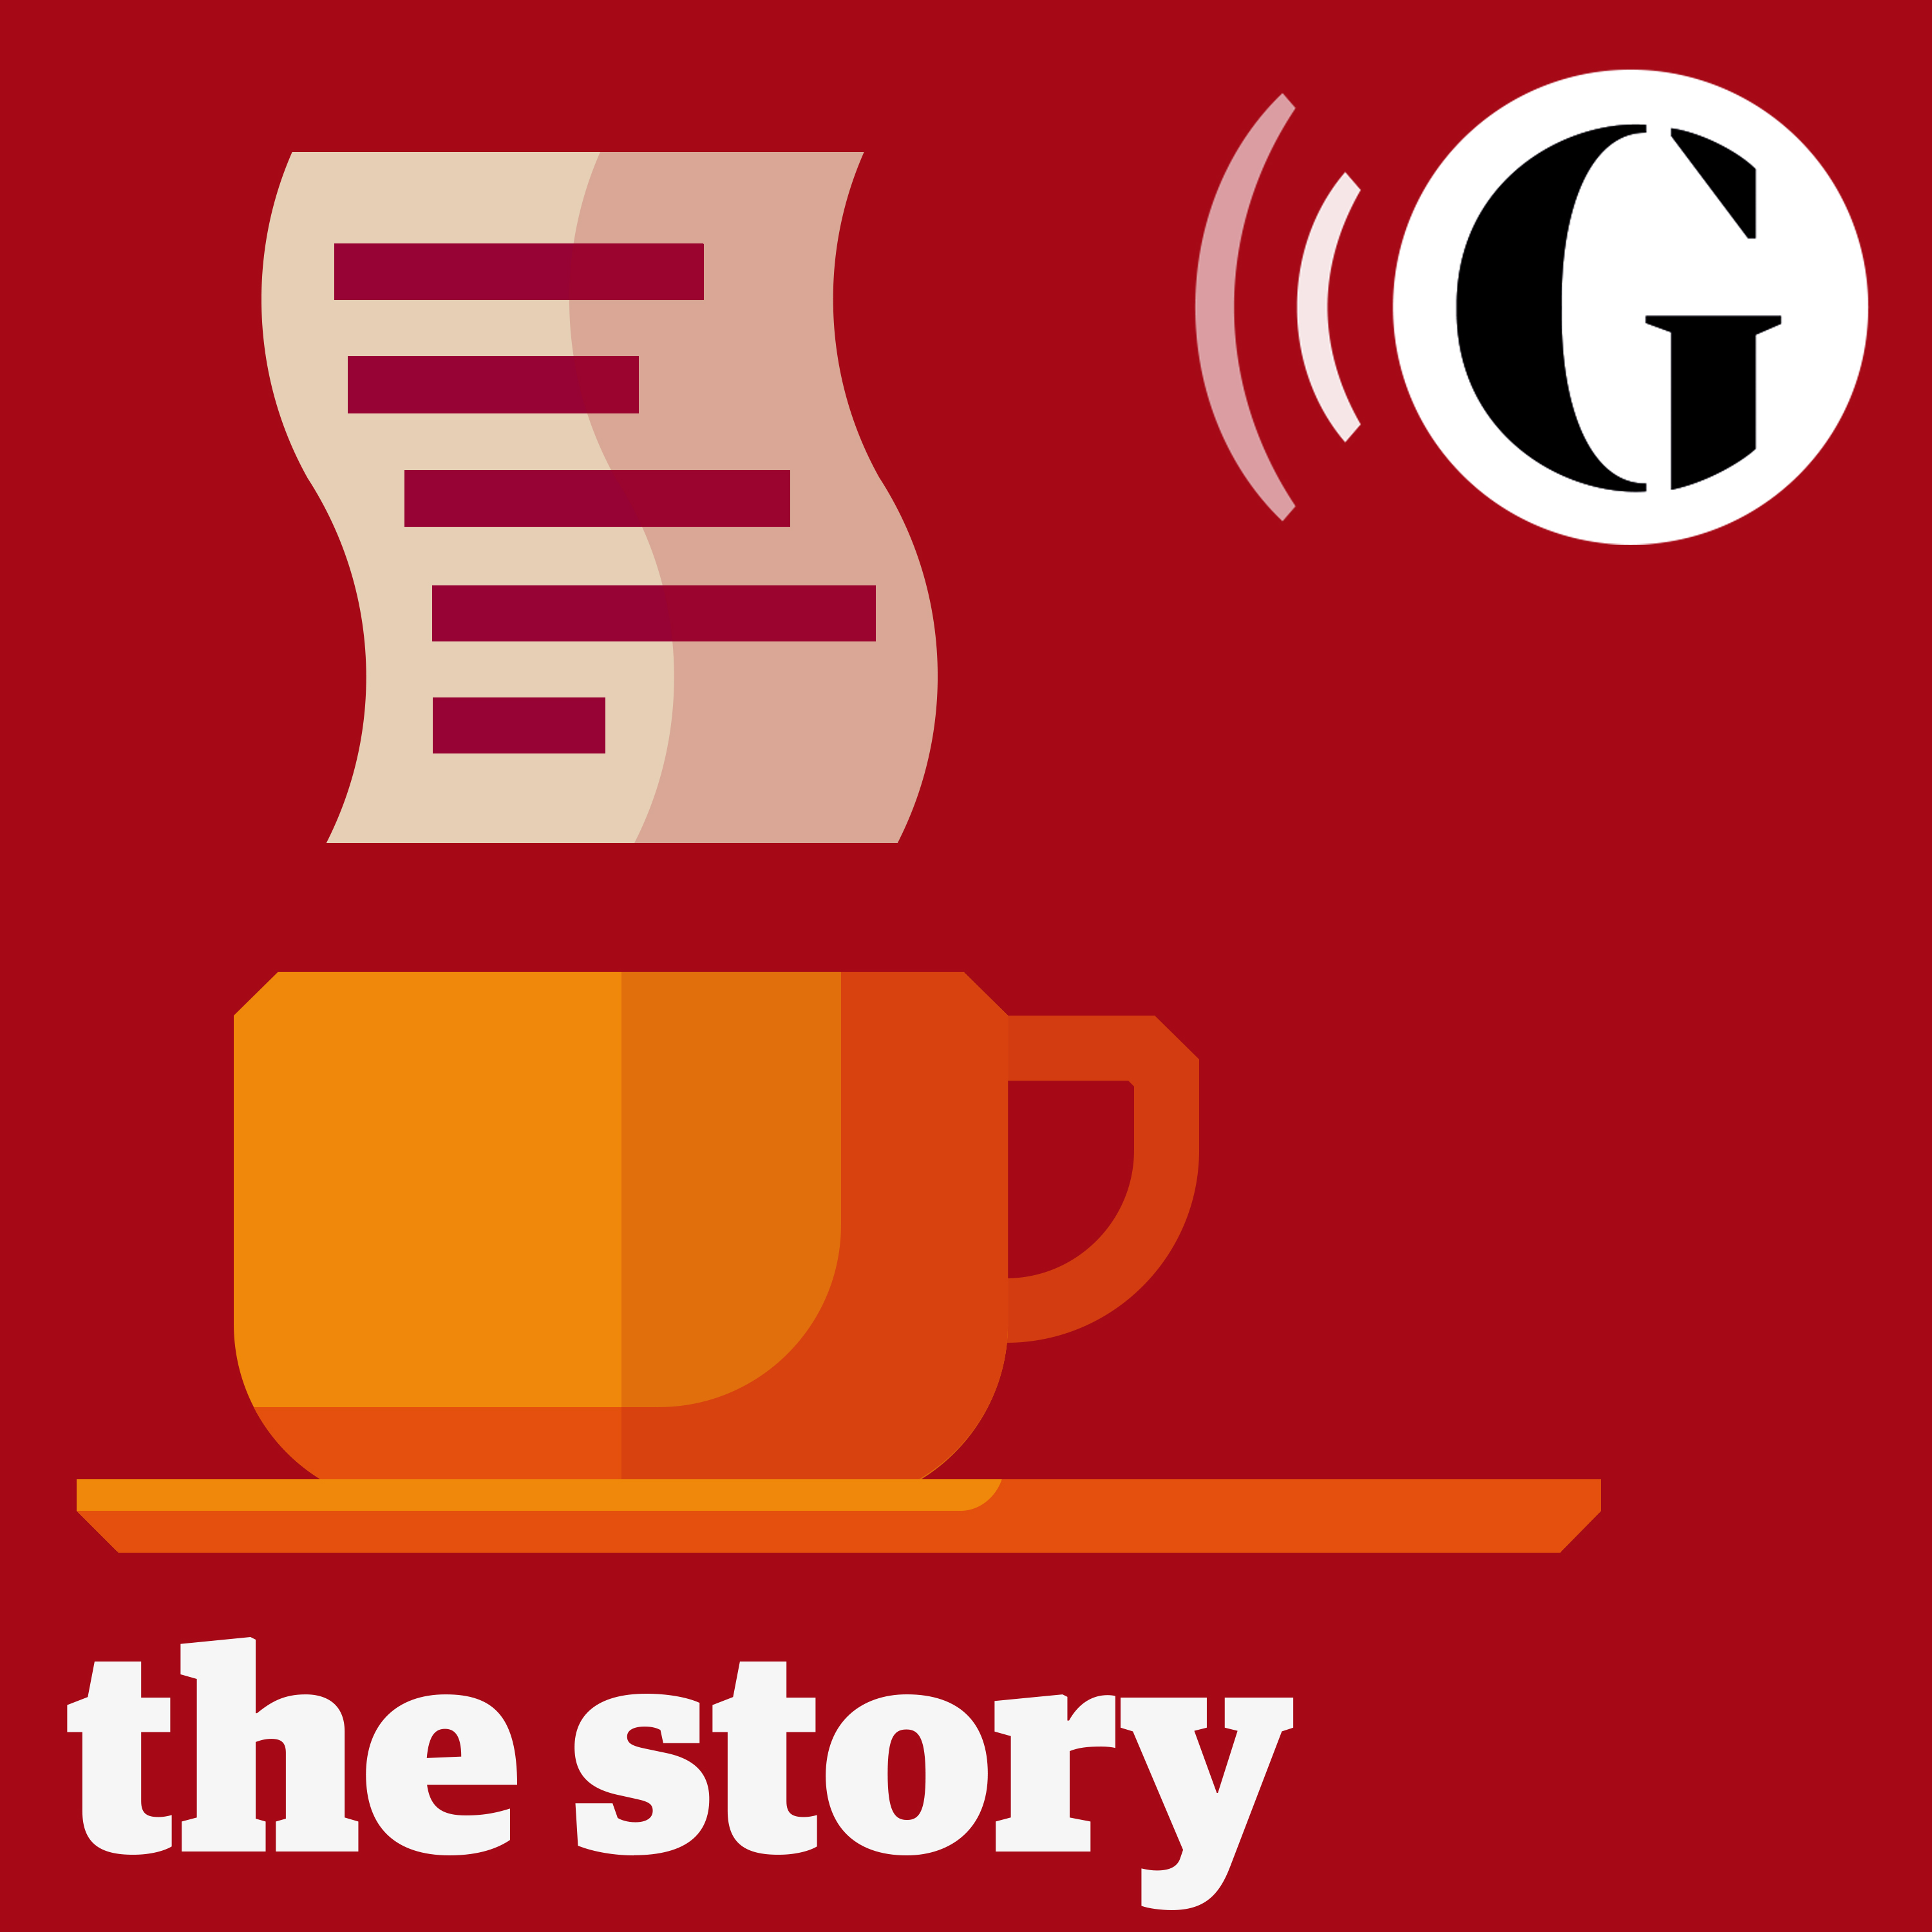 Maybe baby: should I have children or not? - The Story podcast